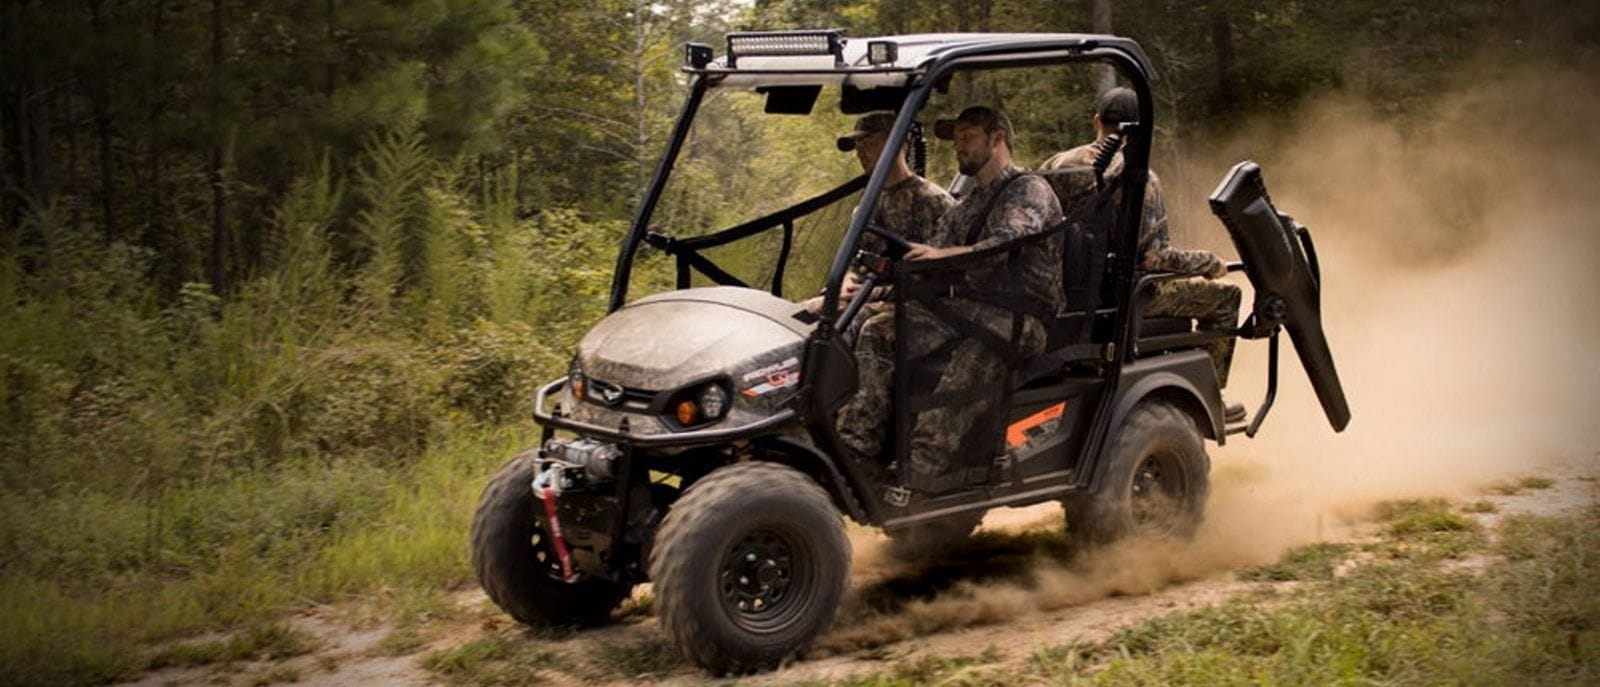 Augusta Golf & Utility Cars are the master distributor for Textron Offroad products